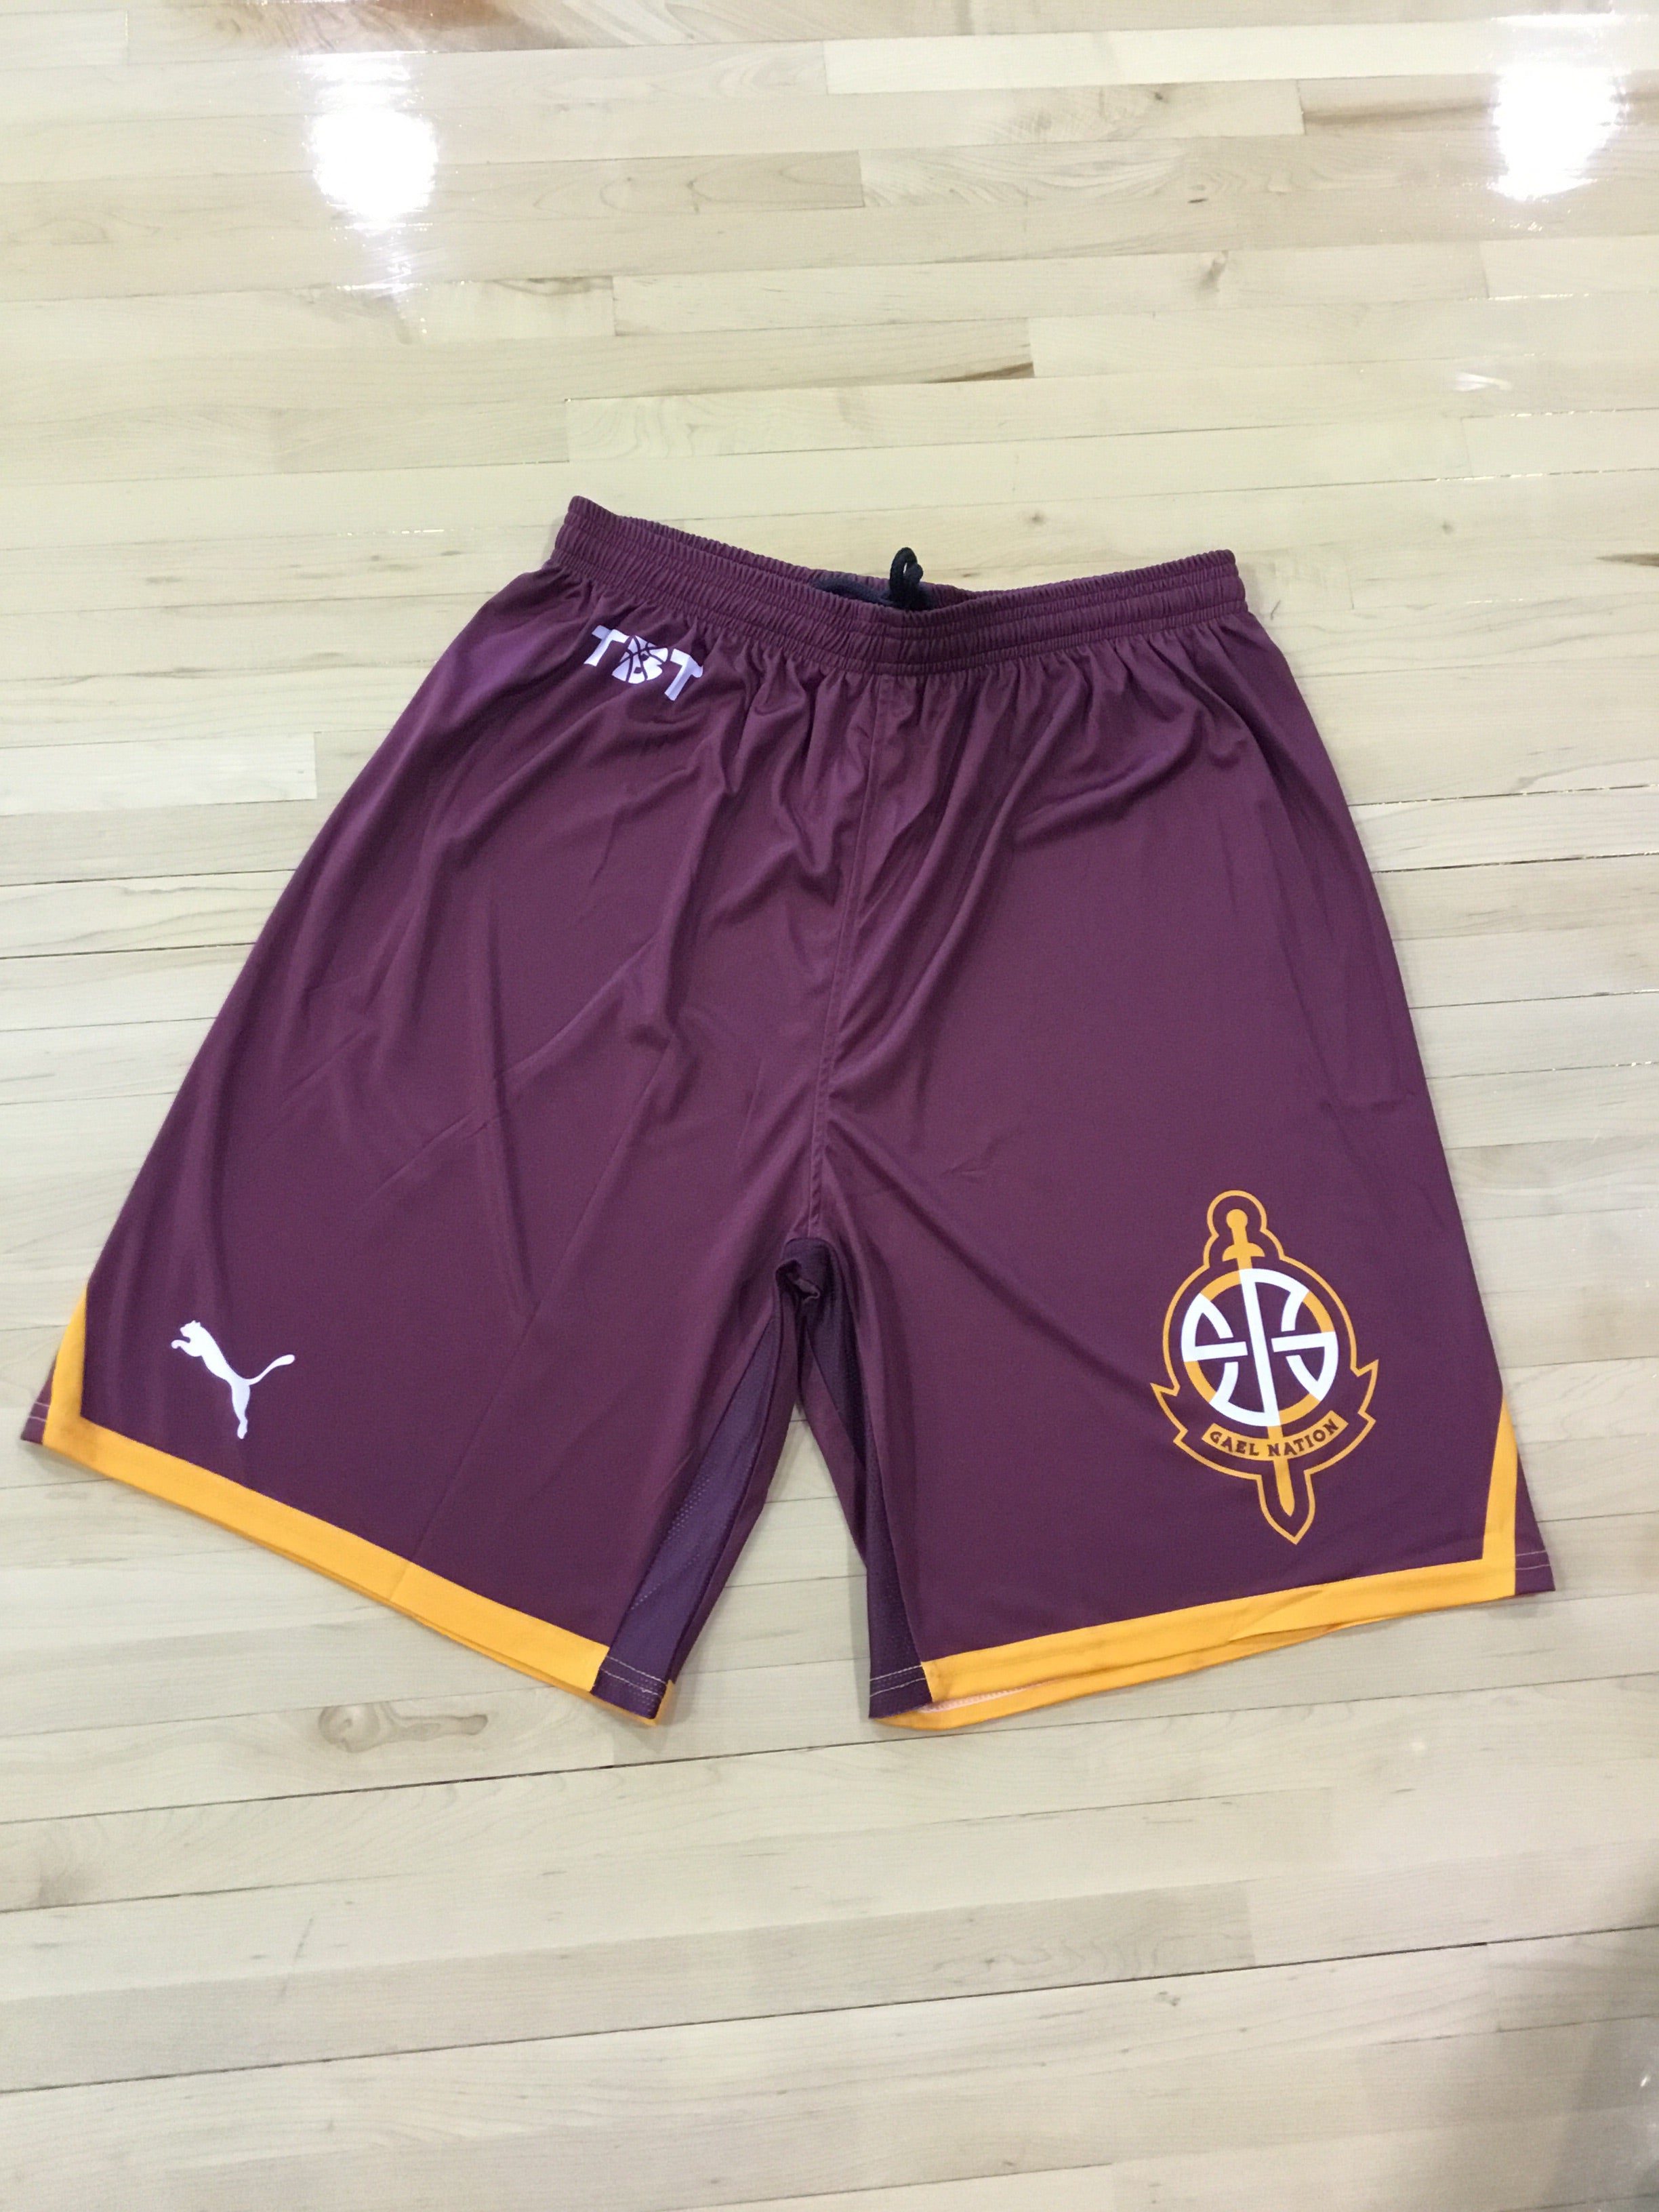 Gaelnation - 2018 Official Team Shorts (Red)